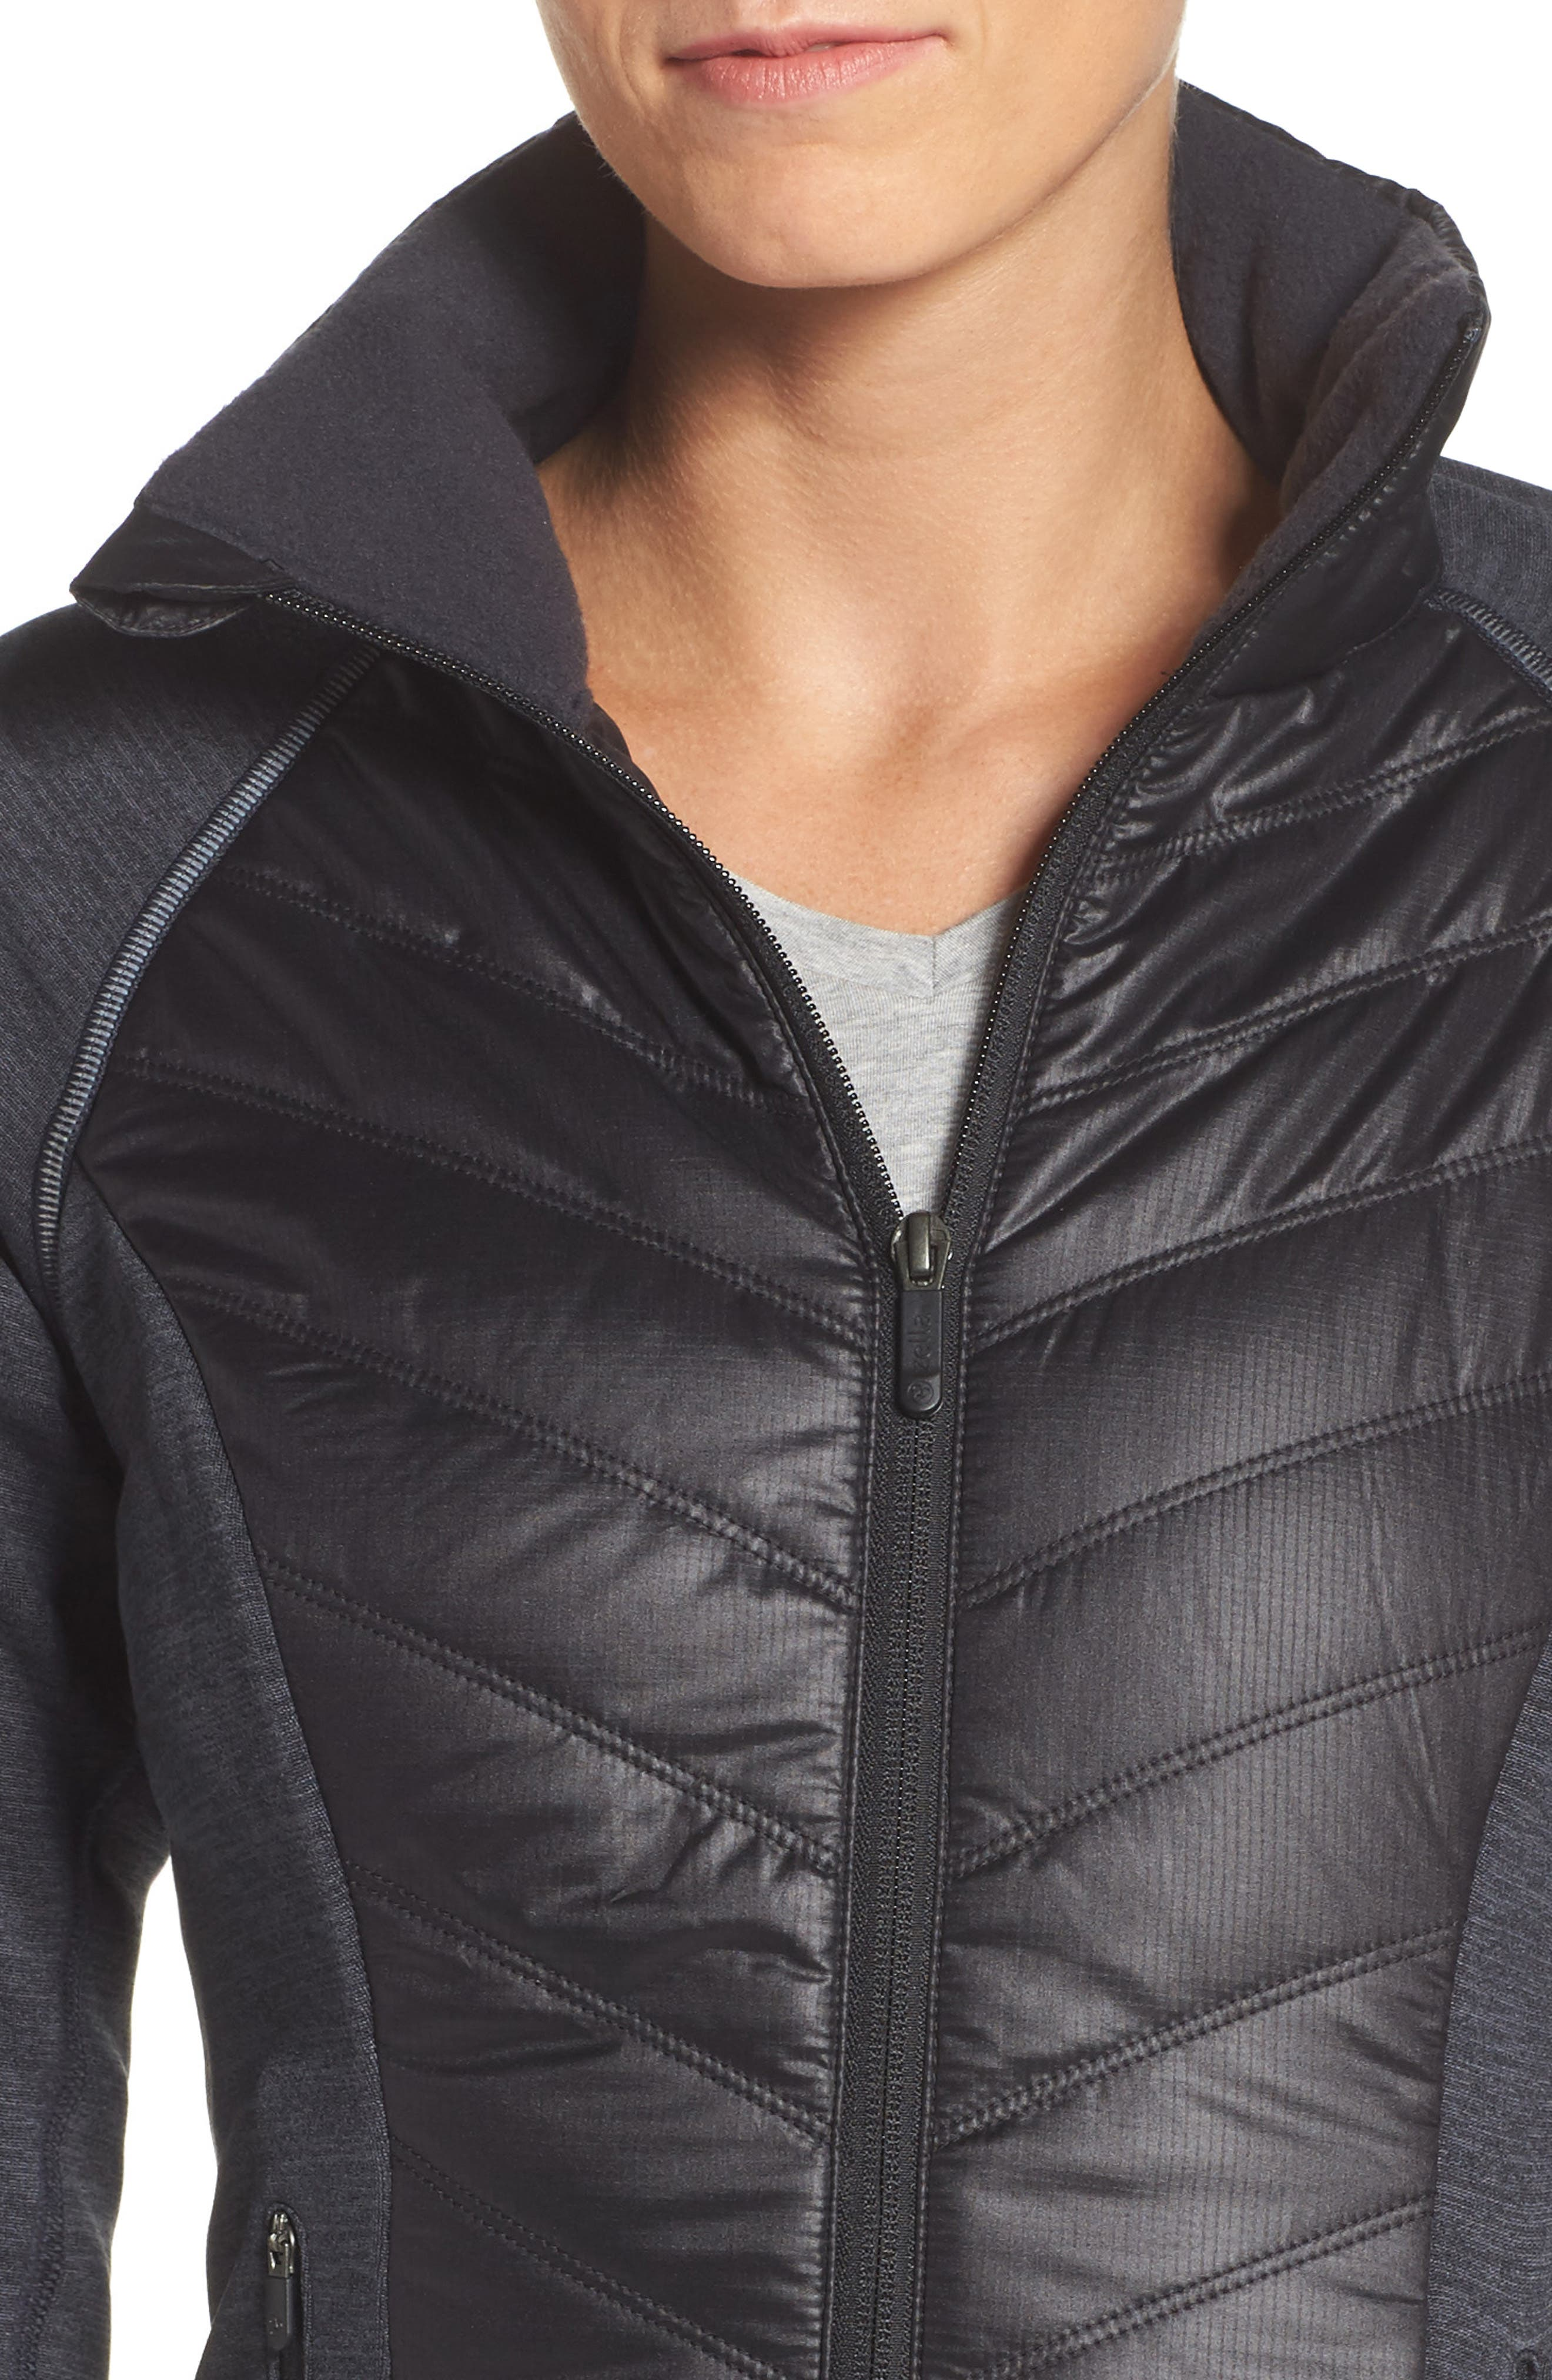 Zelfusion Reflective Quilted Jacket,                             Alternate thumbnail 4, color,                             001